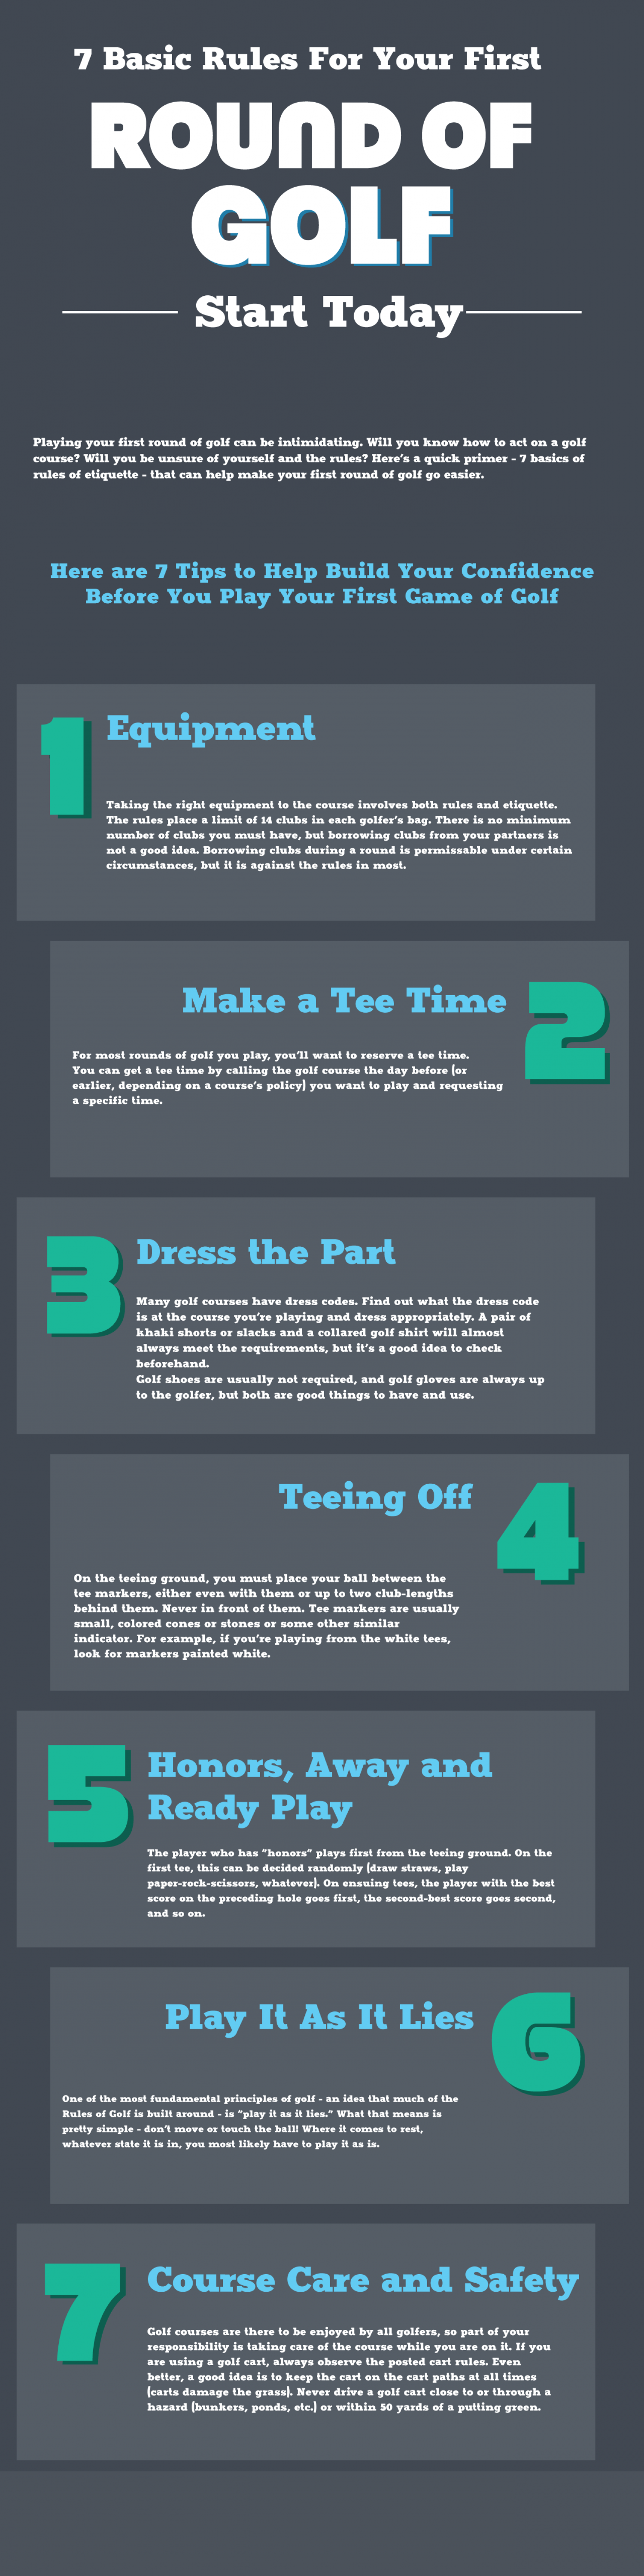 Seven Standard Principles For The First Game of golf Infographic